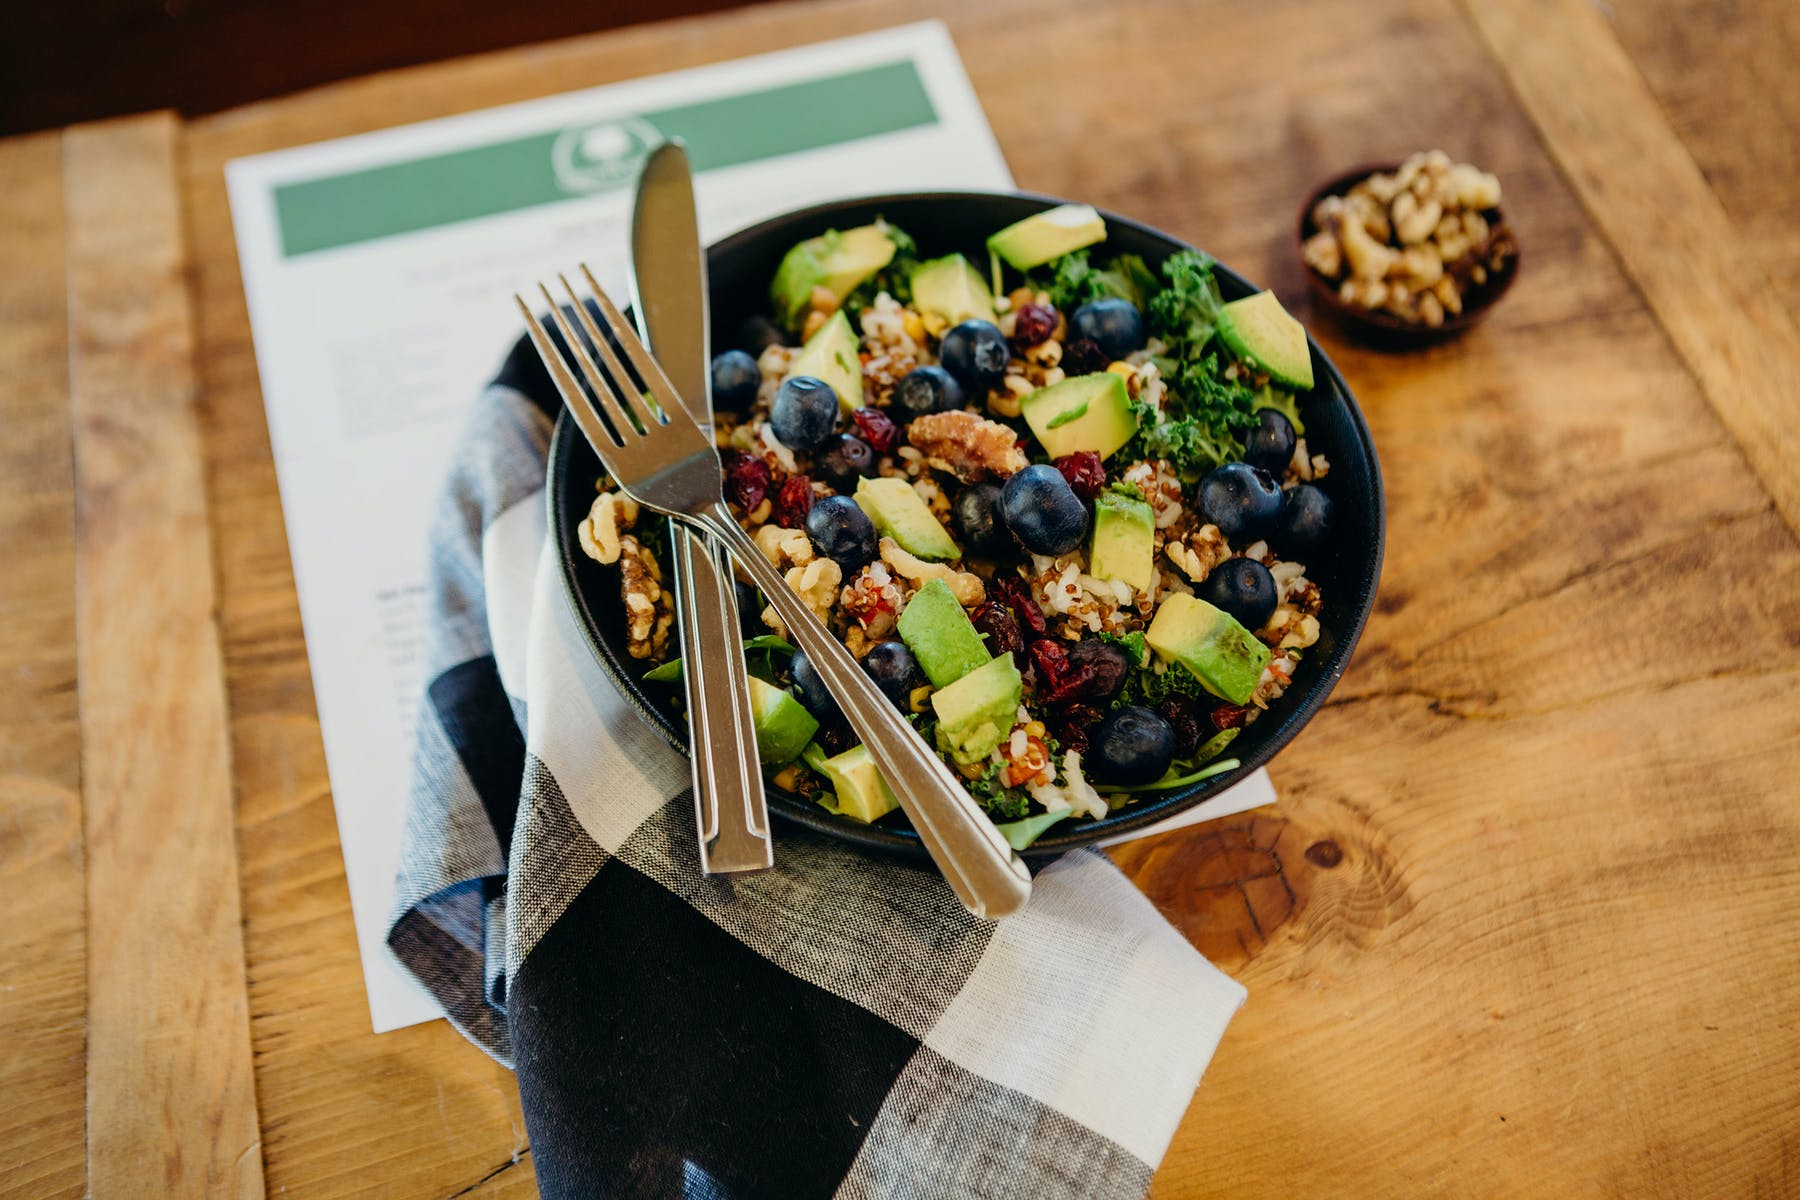 fresh salad with avocado and blueberries